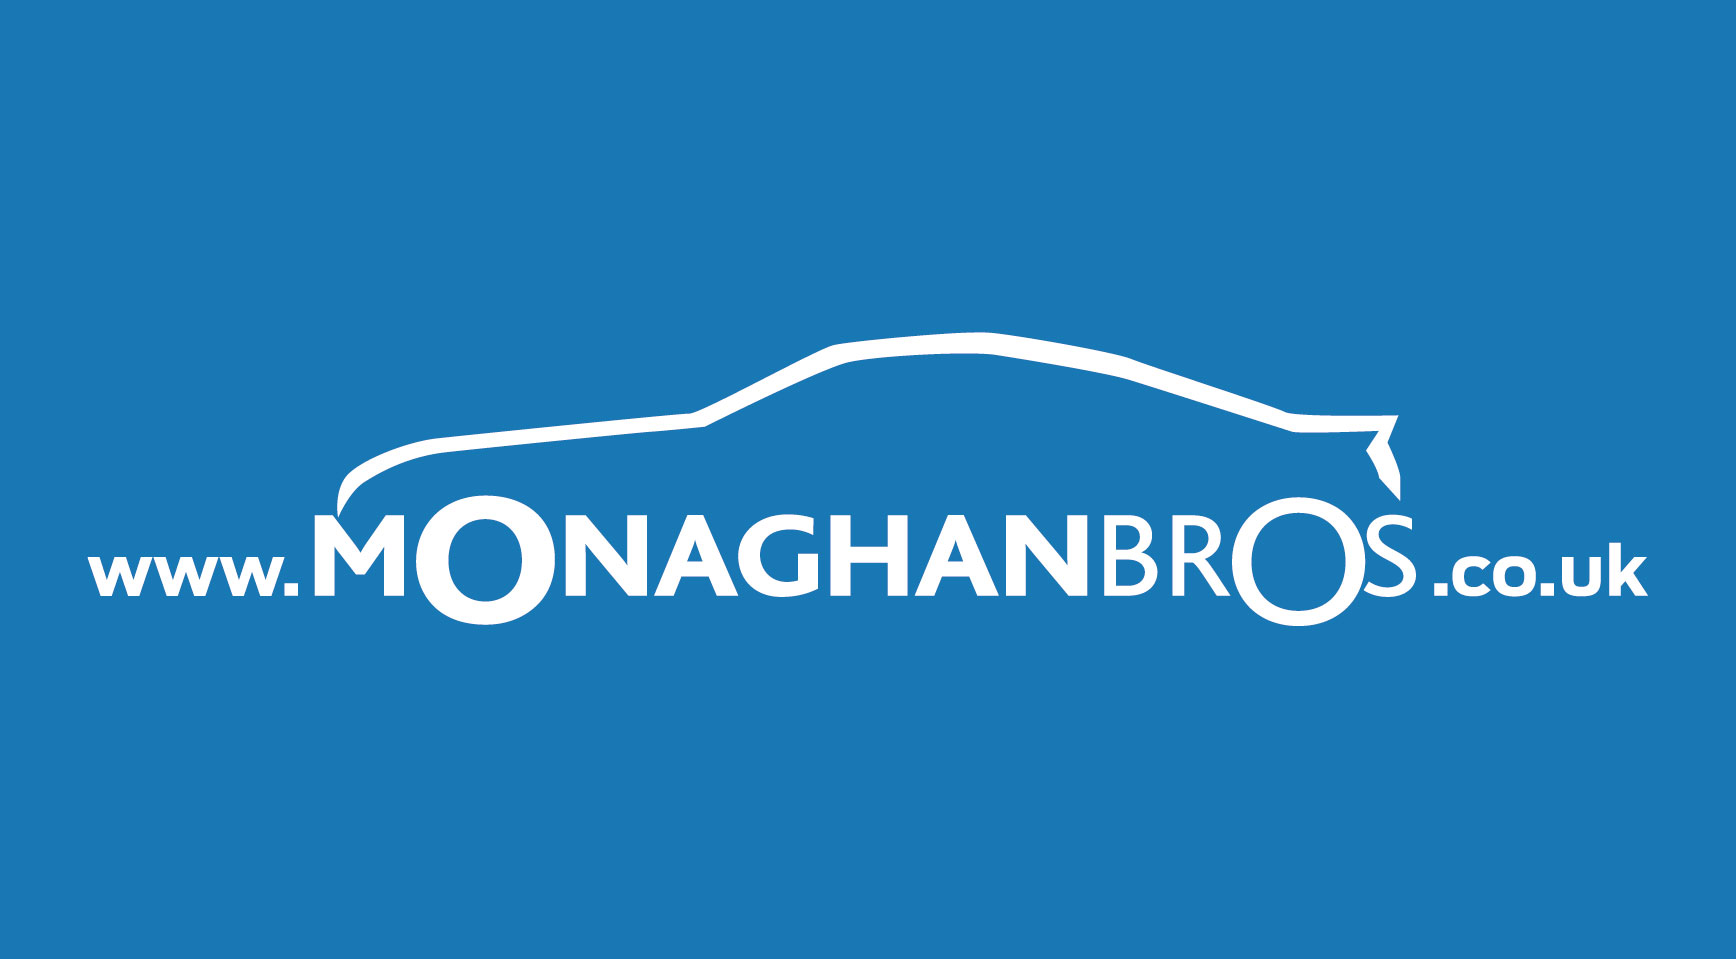 Monaghan Brothers